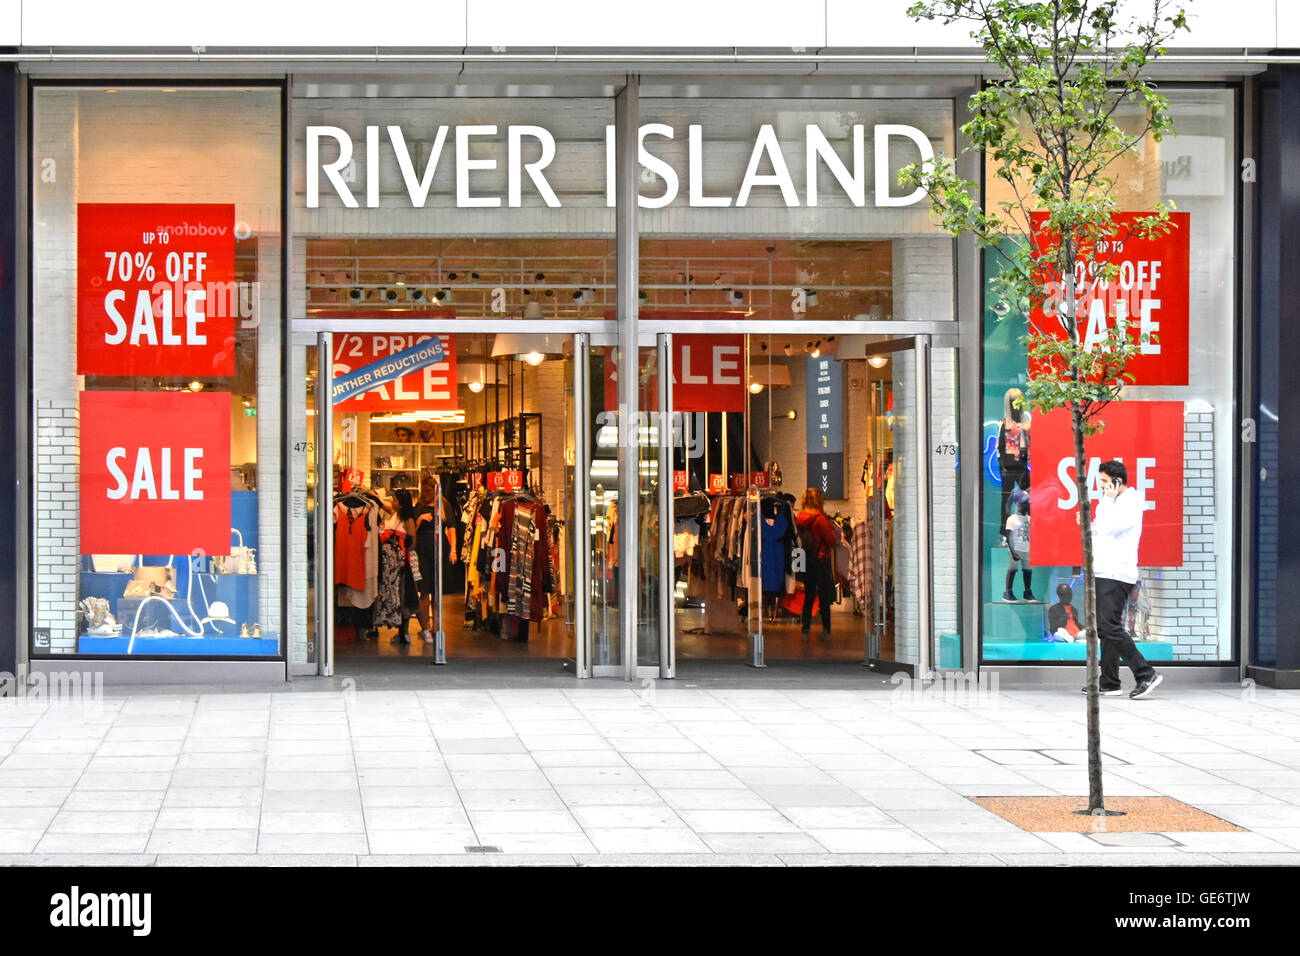 2256b9748 Sale discount posters in store windows at River Island clothing shop front  & entrance in Oxford Street West End London shopping street in England UK